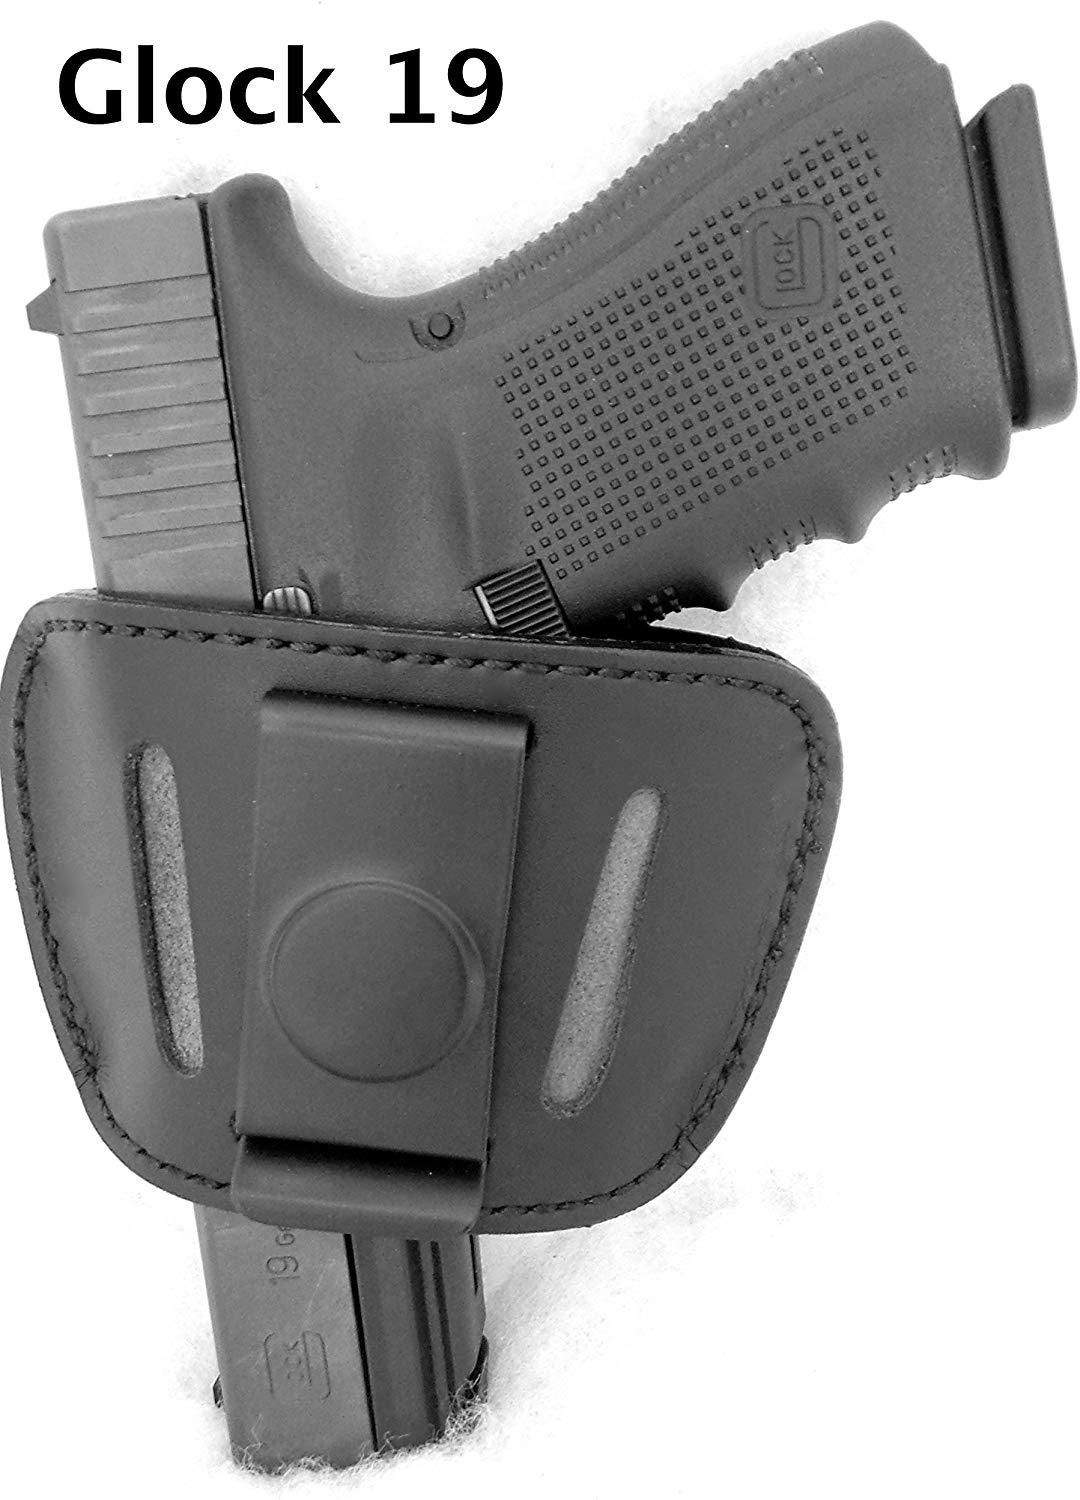 Don't Tread On Me Universal IWB/OWB Holster